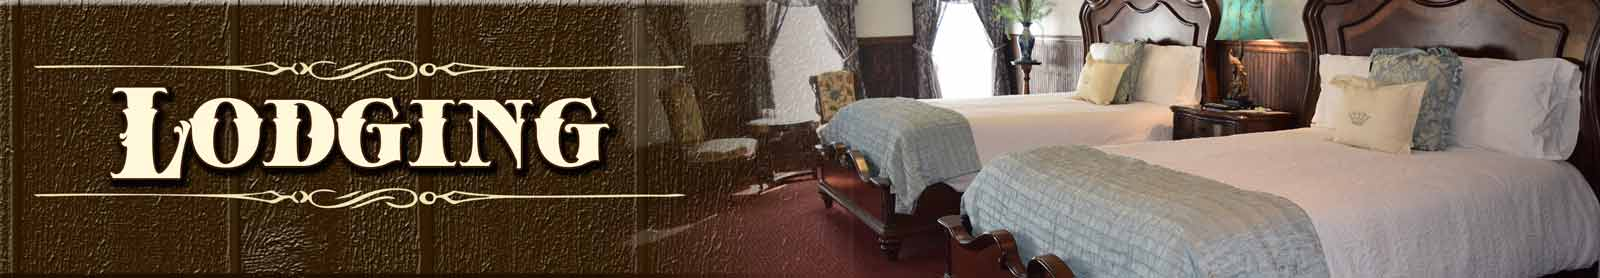 Lodging tombstoneweb if youre planning on spending a little time in the tombstone arizona area you will find a nice selection of lodging facilities to suit just about any publicscrutiny Image collections